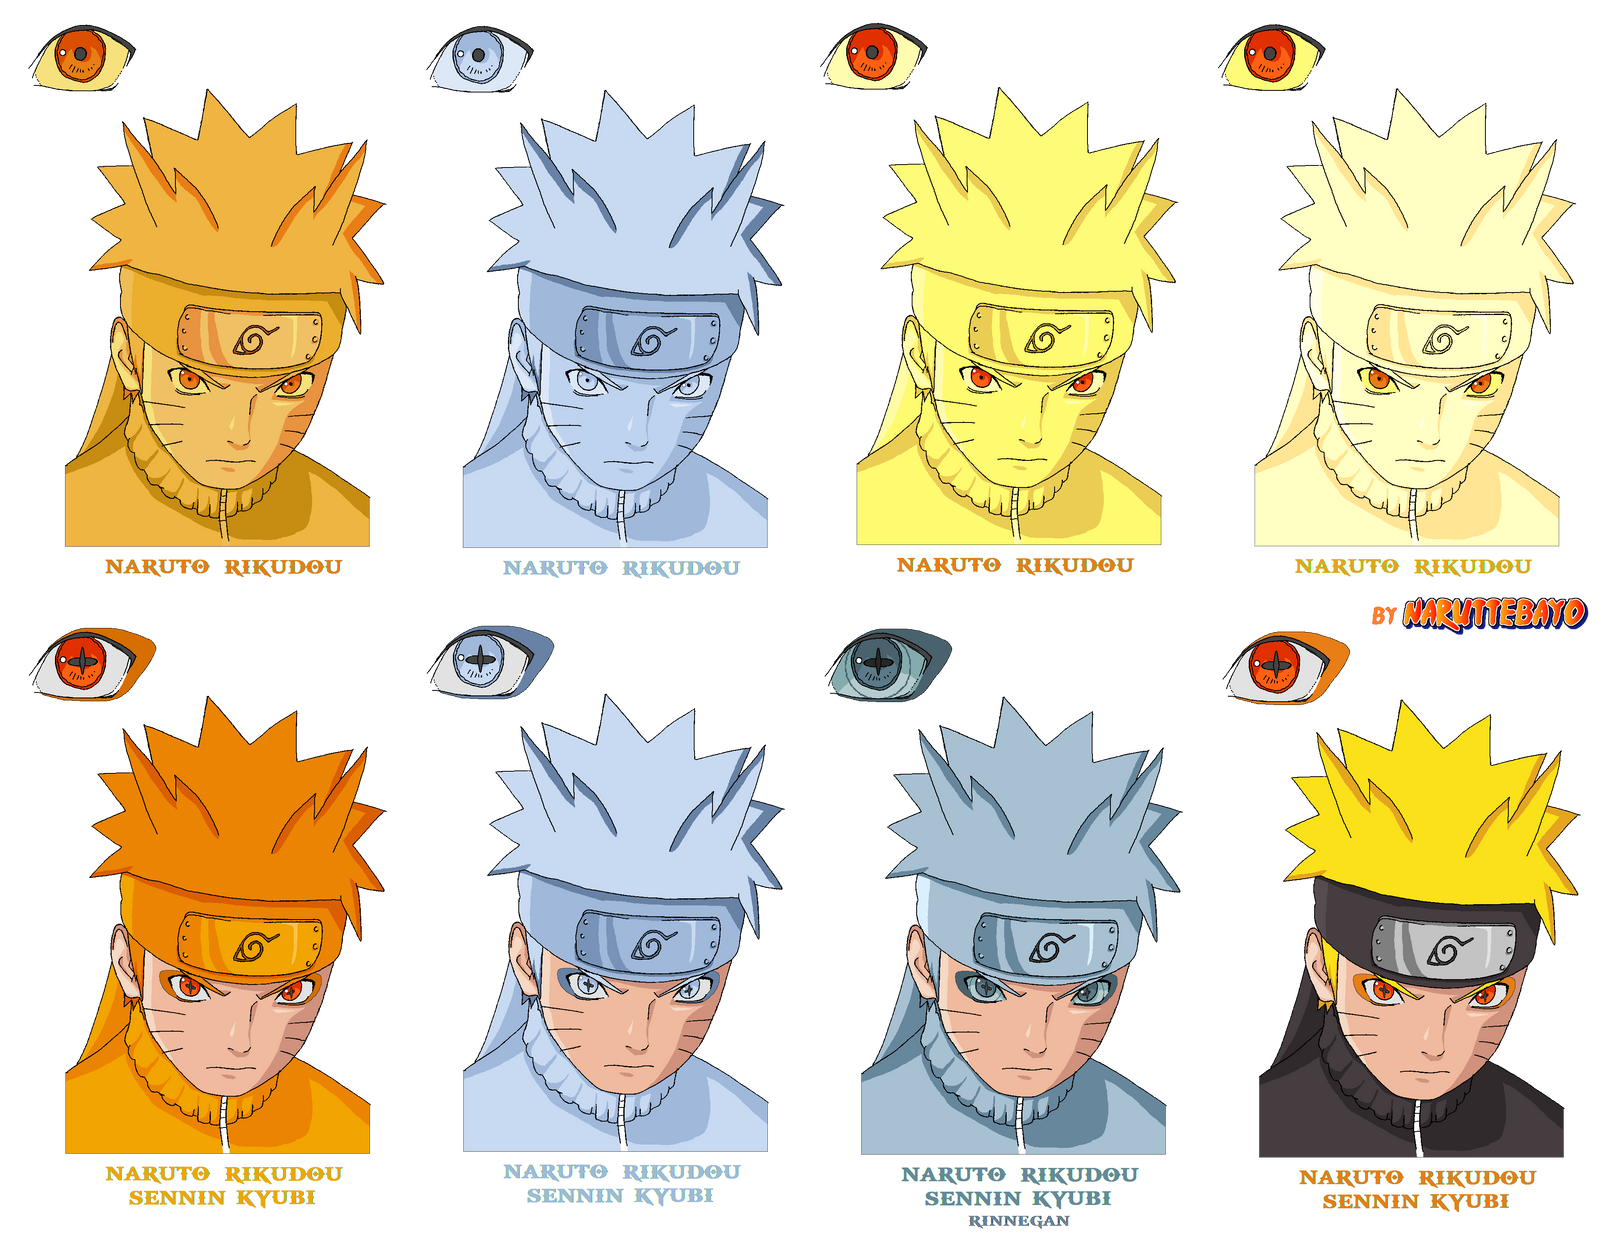 naruto rikudou mode - new colo by Naruttebayo67